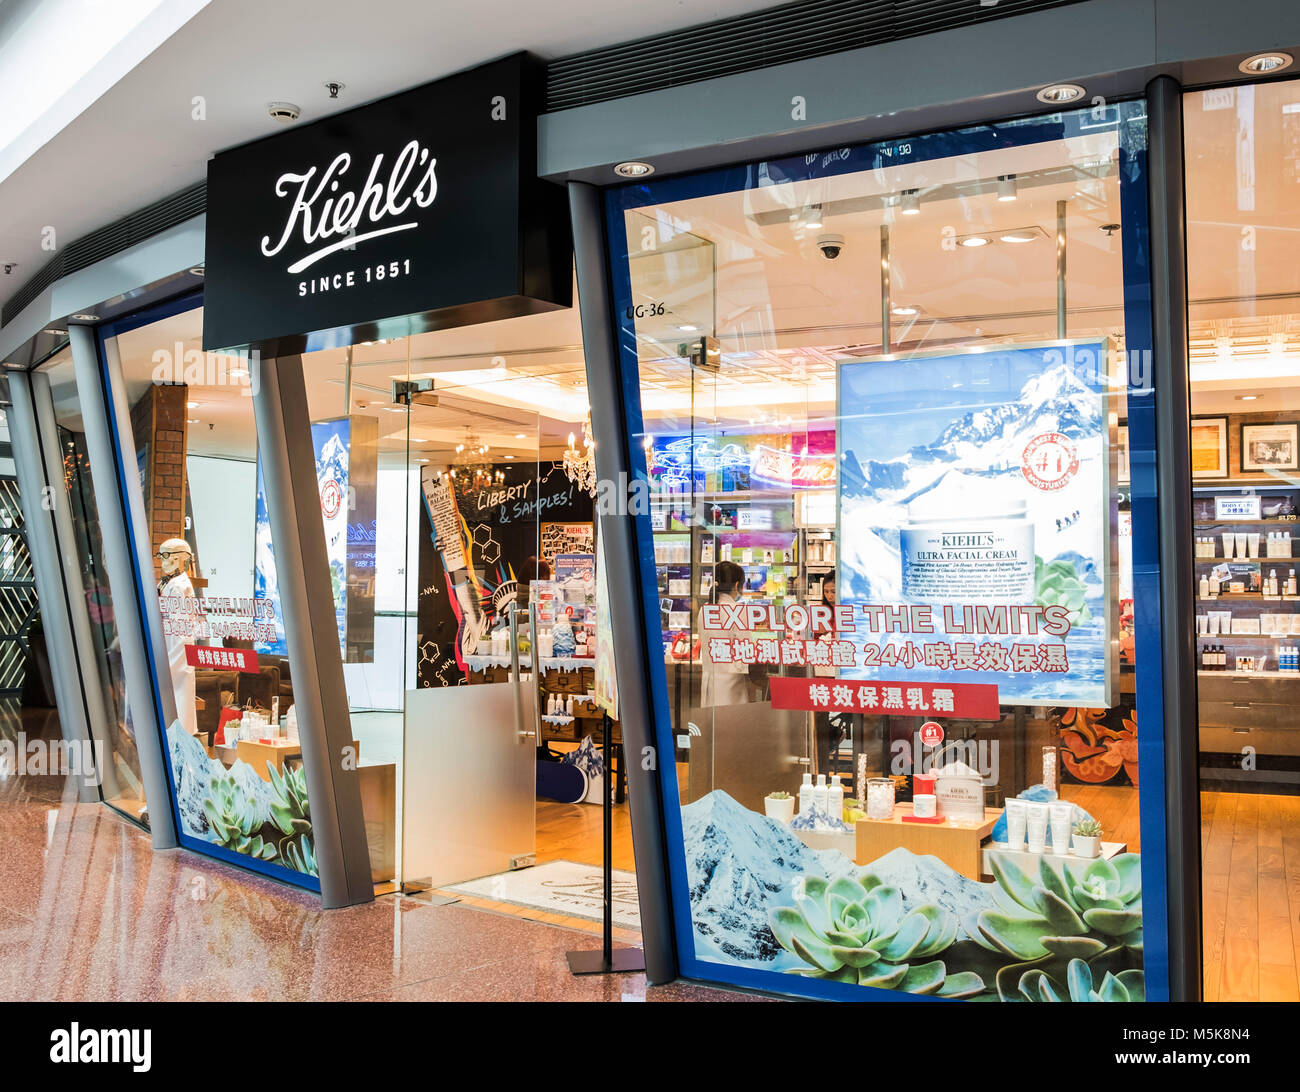 Hong Kong Shopping: Kiehl's Store Shop Kiehls Stock Photos & Kiehl's Store